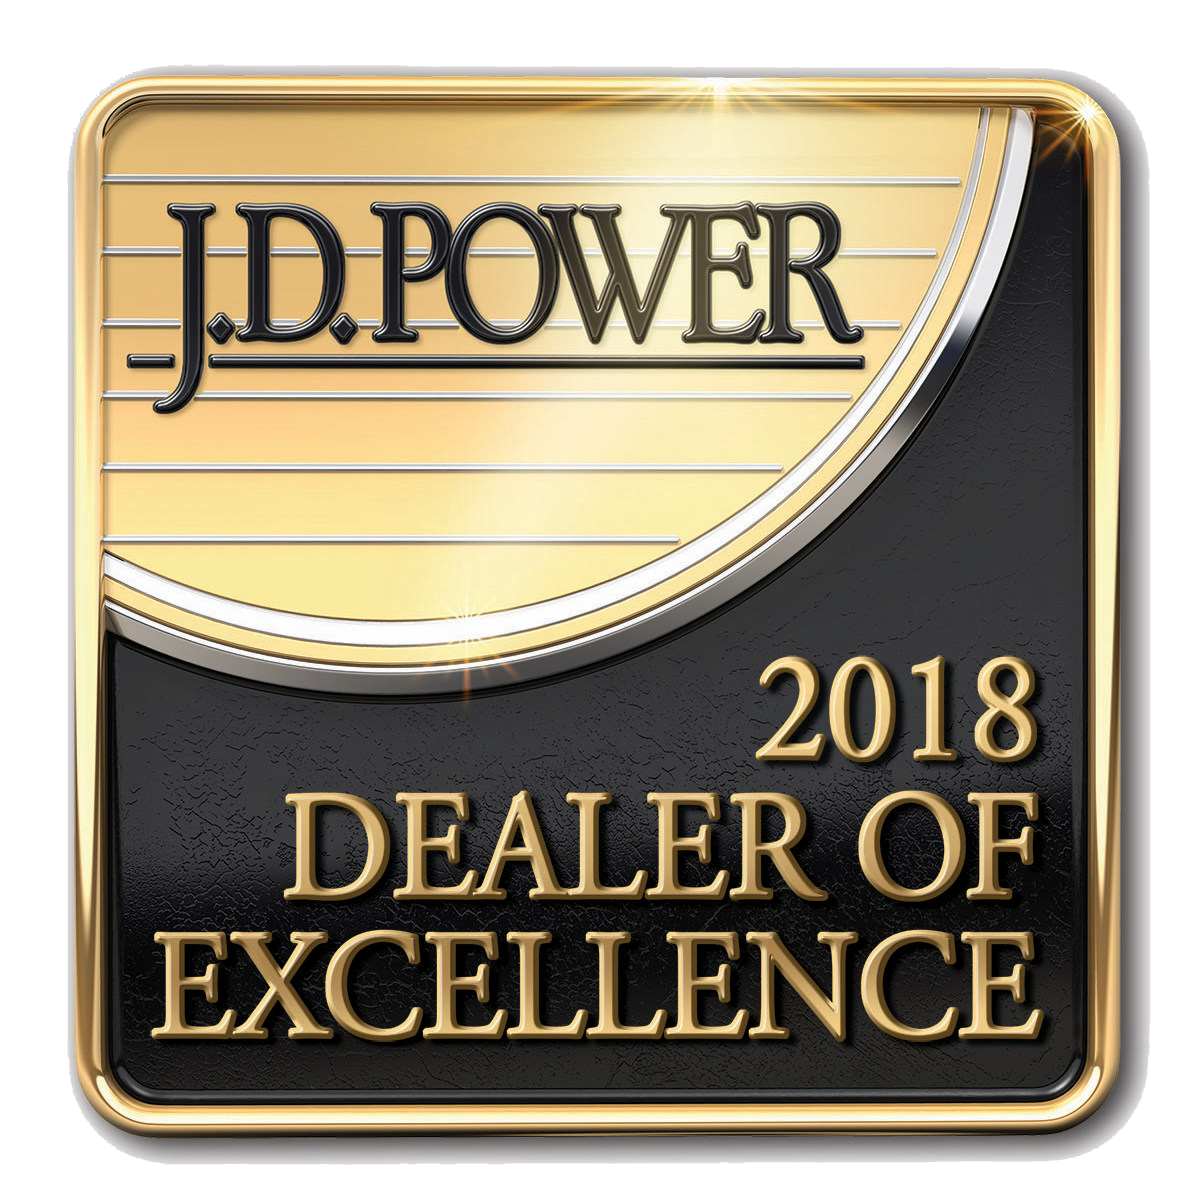 jd power award of excellence logo